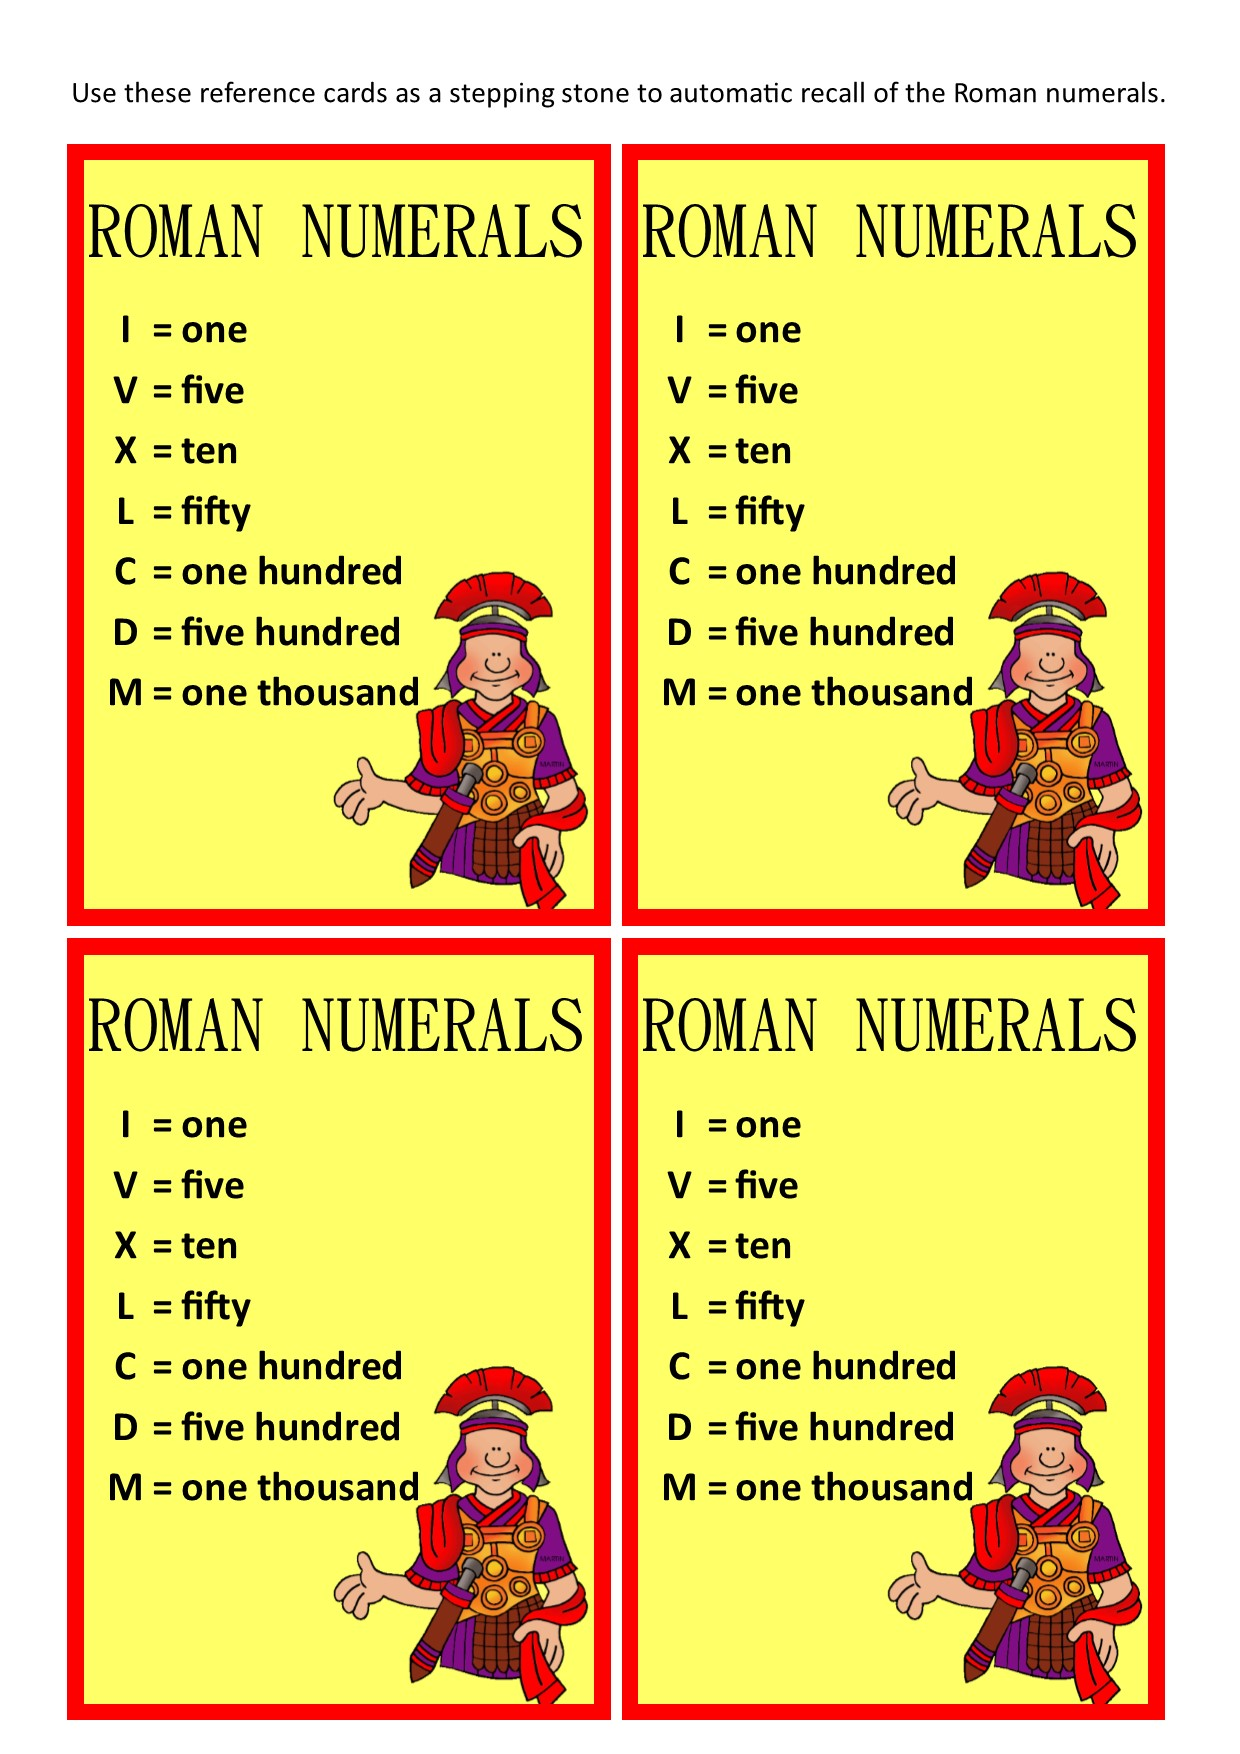 Roman Numeral Reference Cards